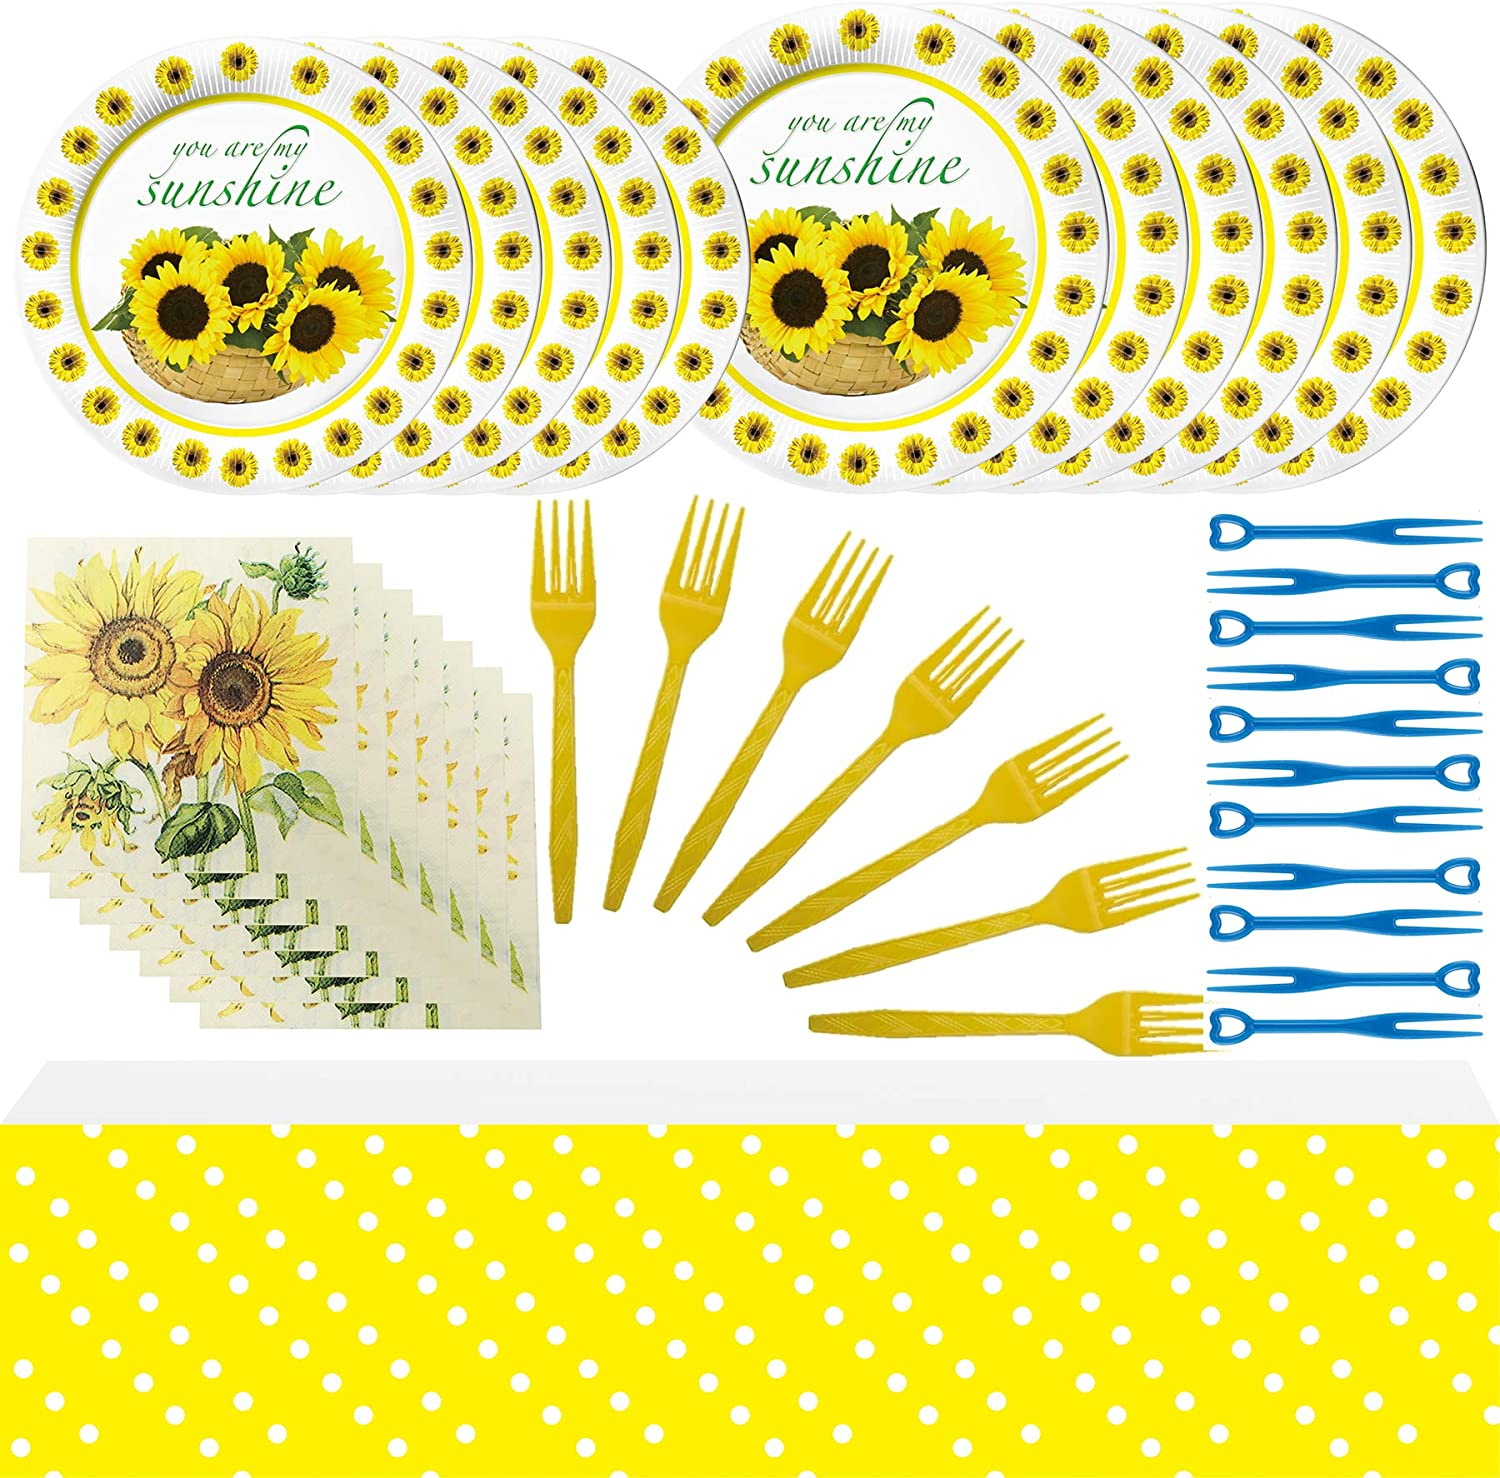 Sunflower Flatware Tablecloth Sunflower Party Decoration Kids Boys Girls and Baby Shower Birthday Party Favors Plates Napkins Sunflower Party Supplies Fork Mini fruit fork Sunflower Birthday Party Dessert Set.